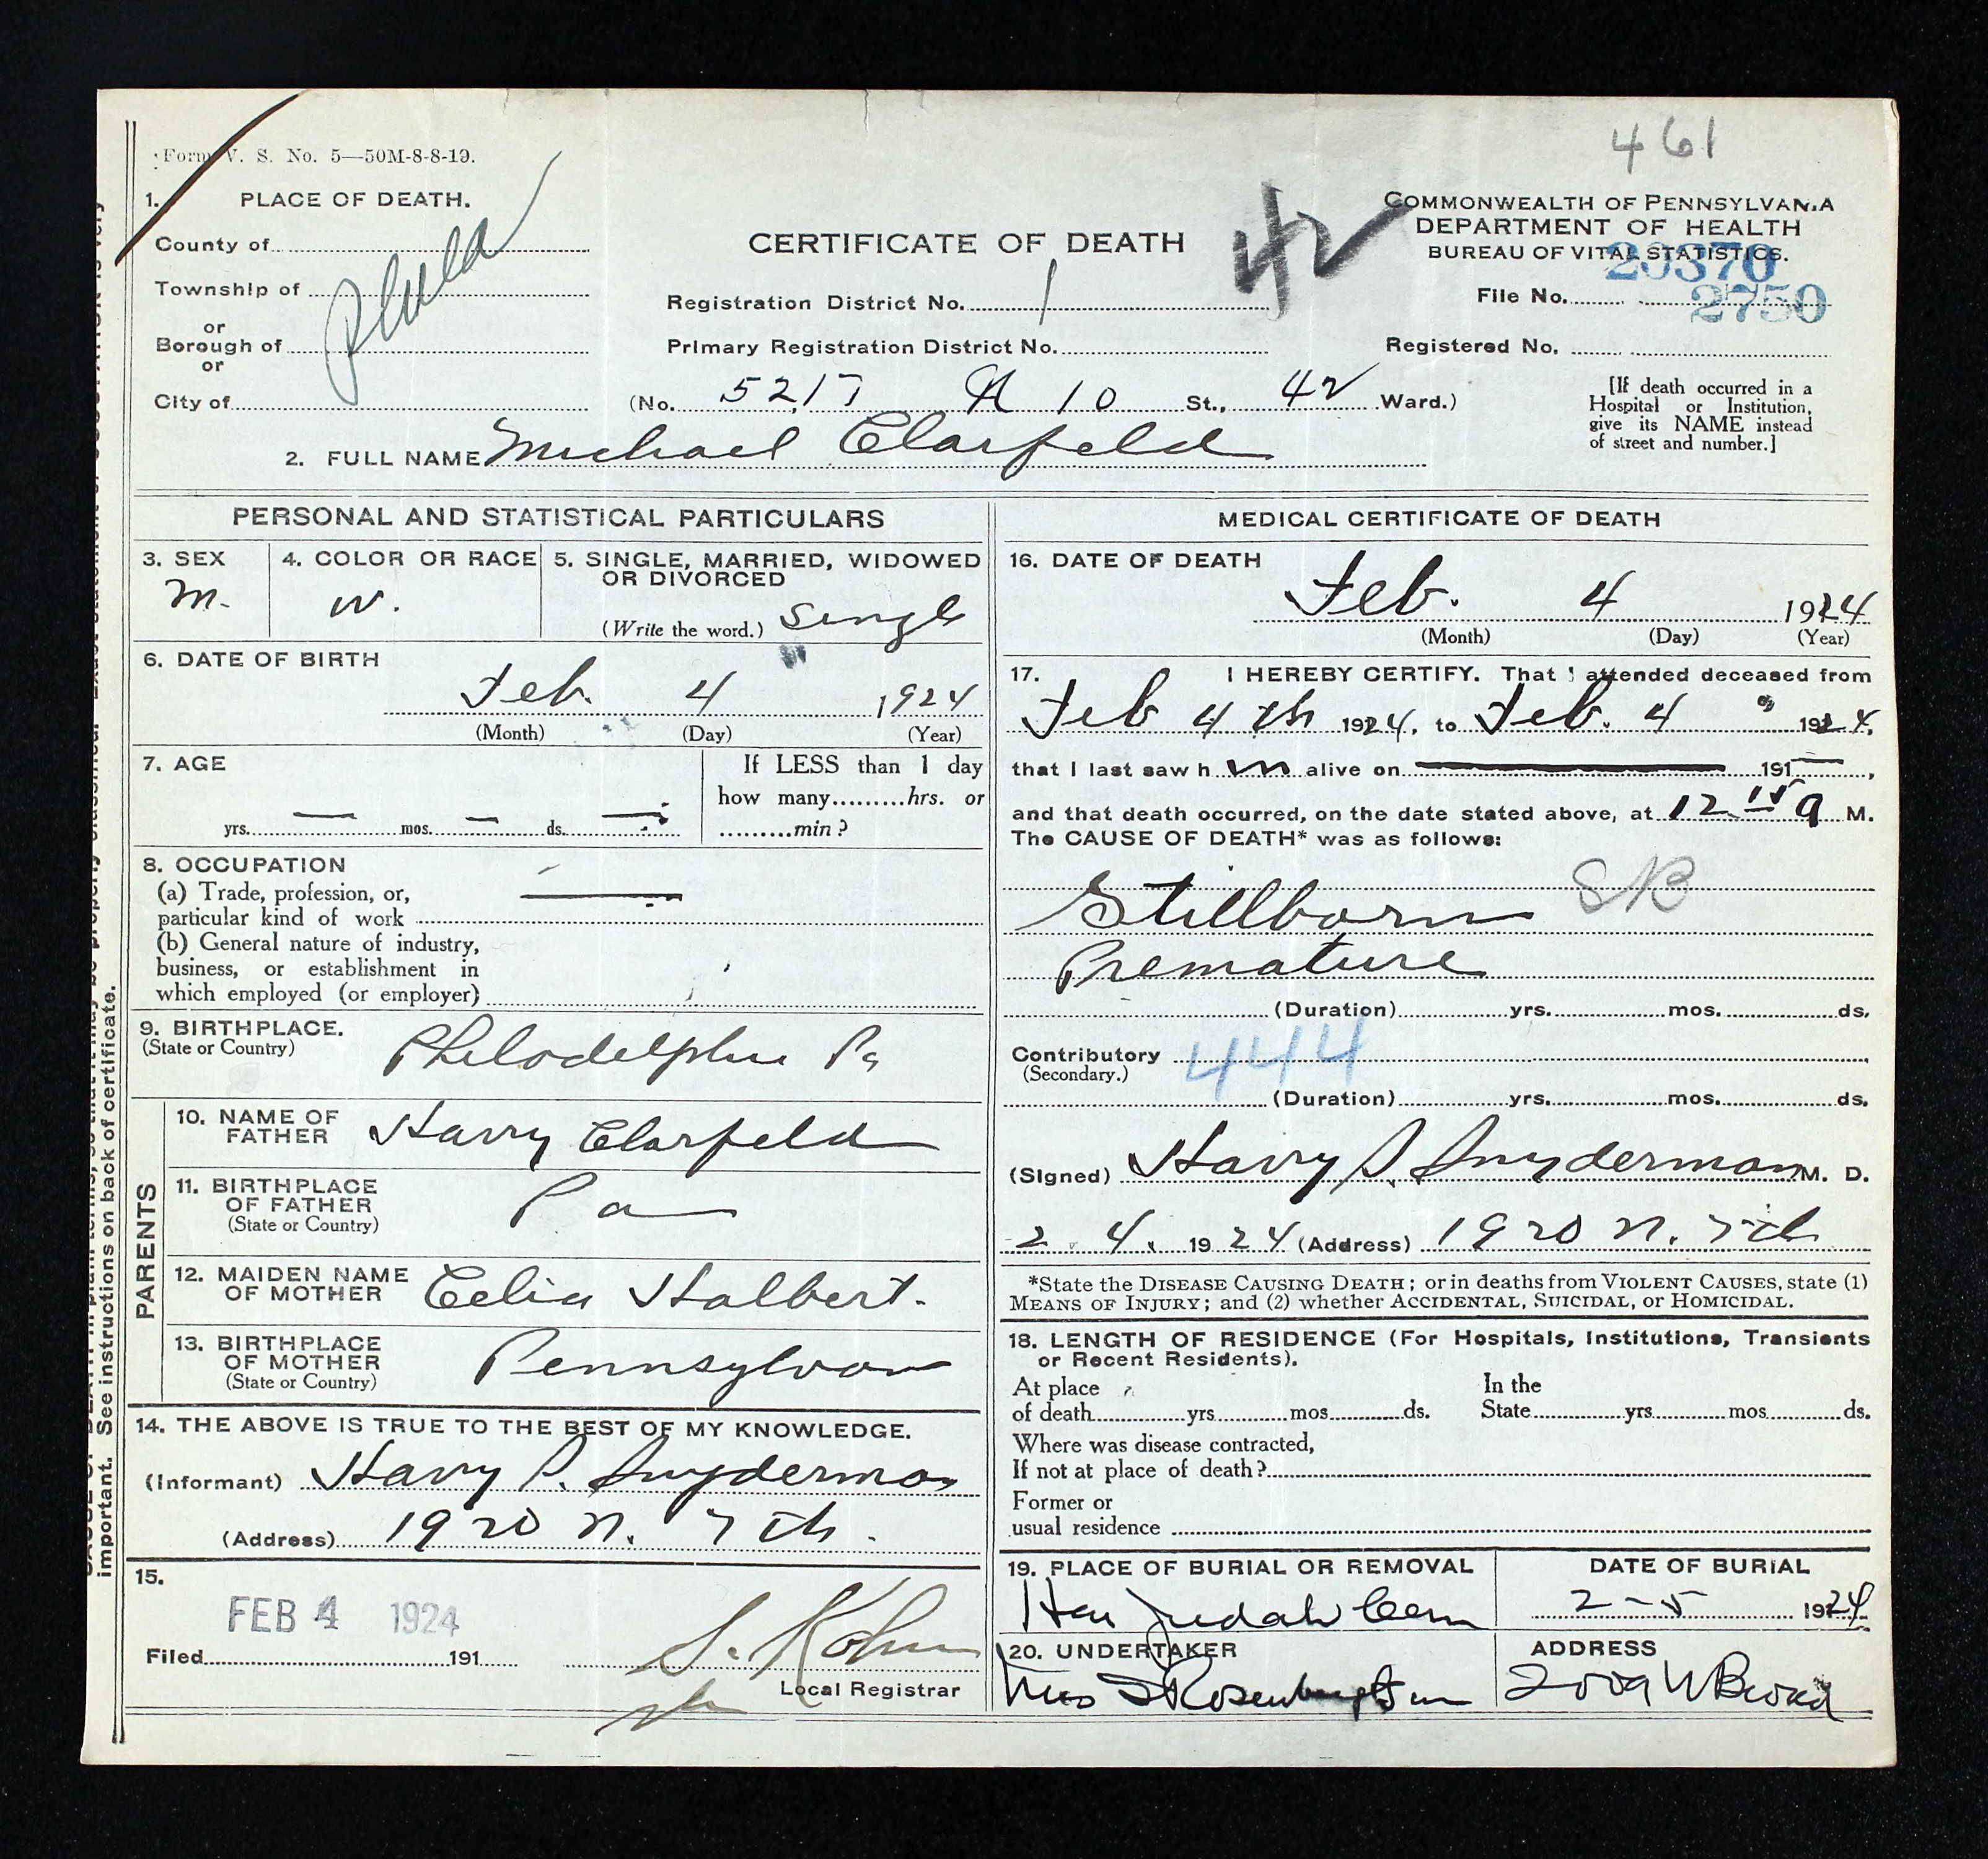 Michael Clarfeld Sex M Race W Age 0 Birth 4 Feb 1924 Birth ...